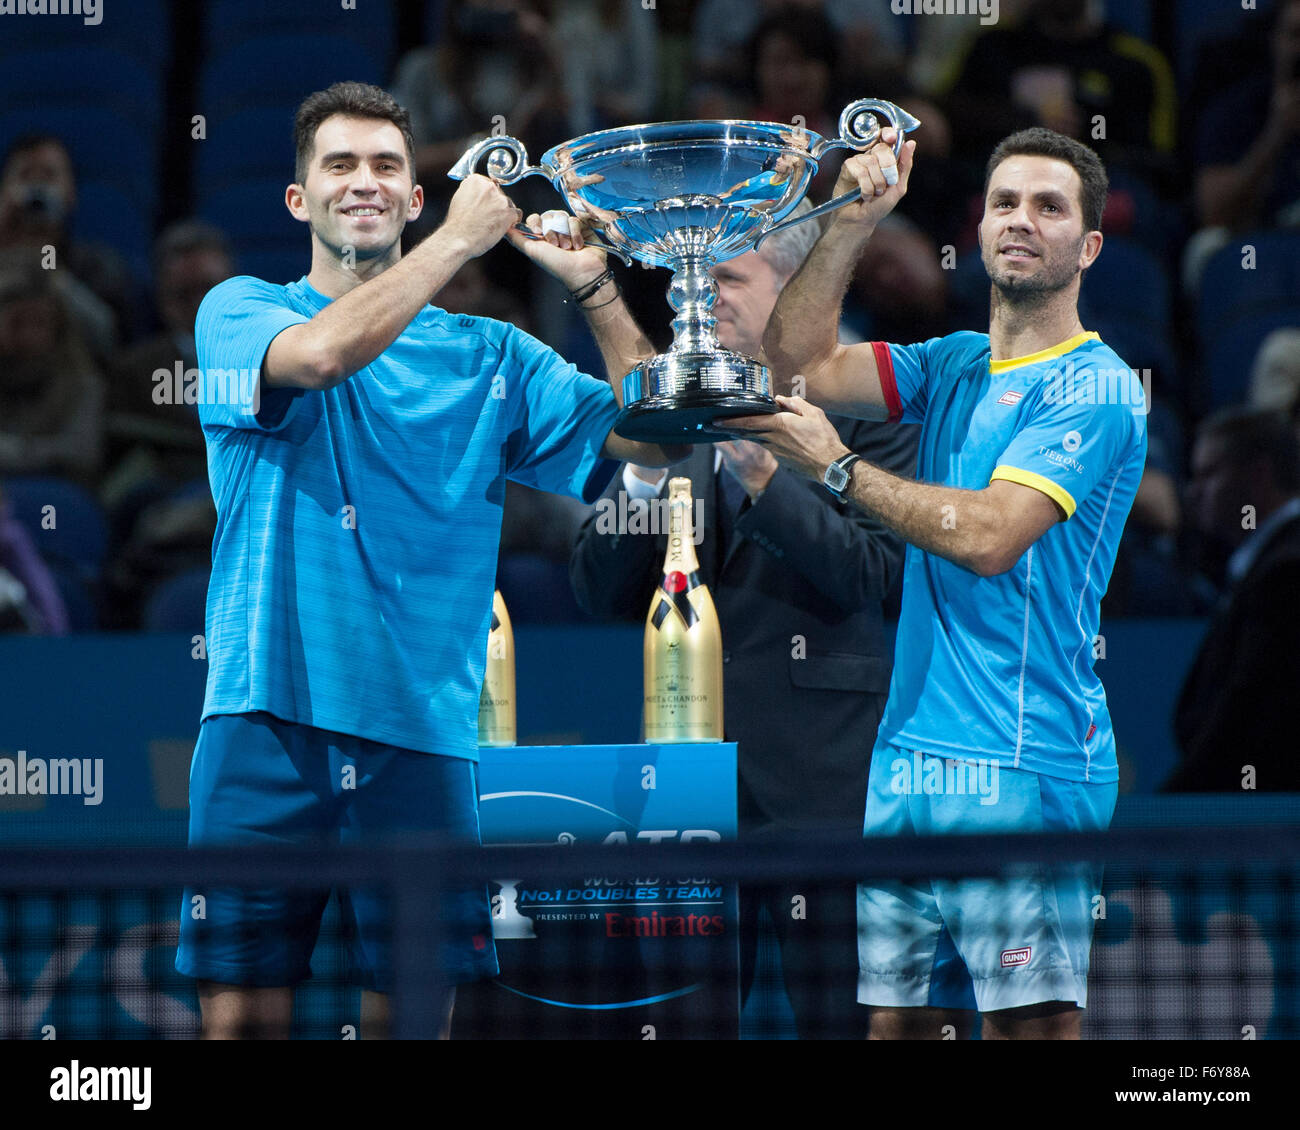 21.11.2015. The O2, London, England. ATP Tennis Tour Finals. Day 7. Jean-Julien Rojer [NED] and Horia Tecau [ROU] - Stock Image